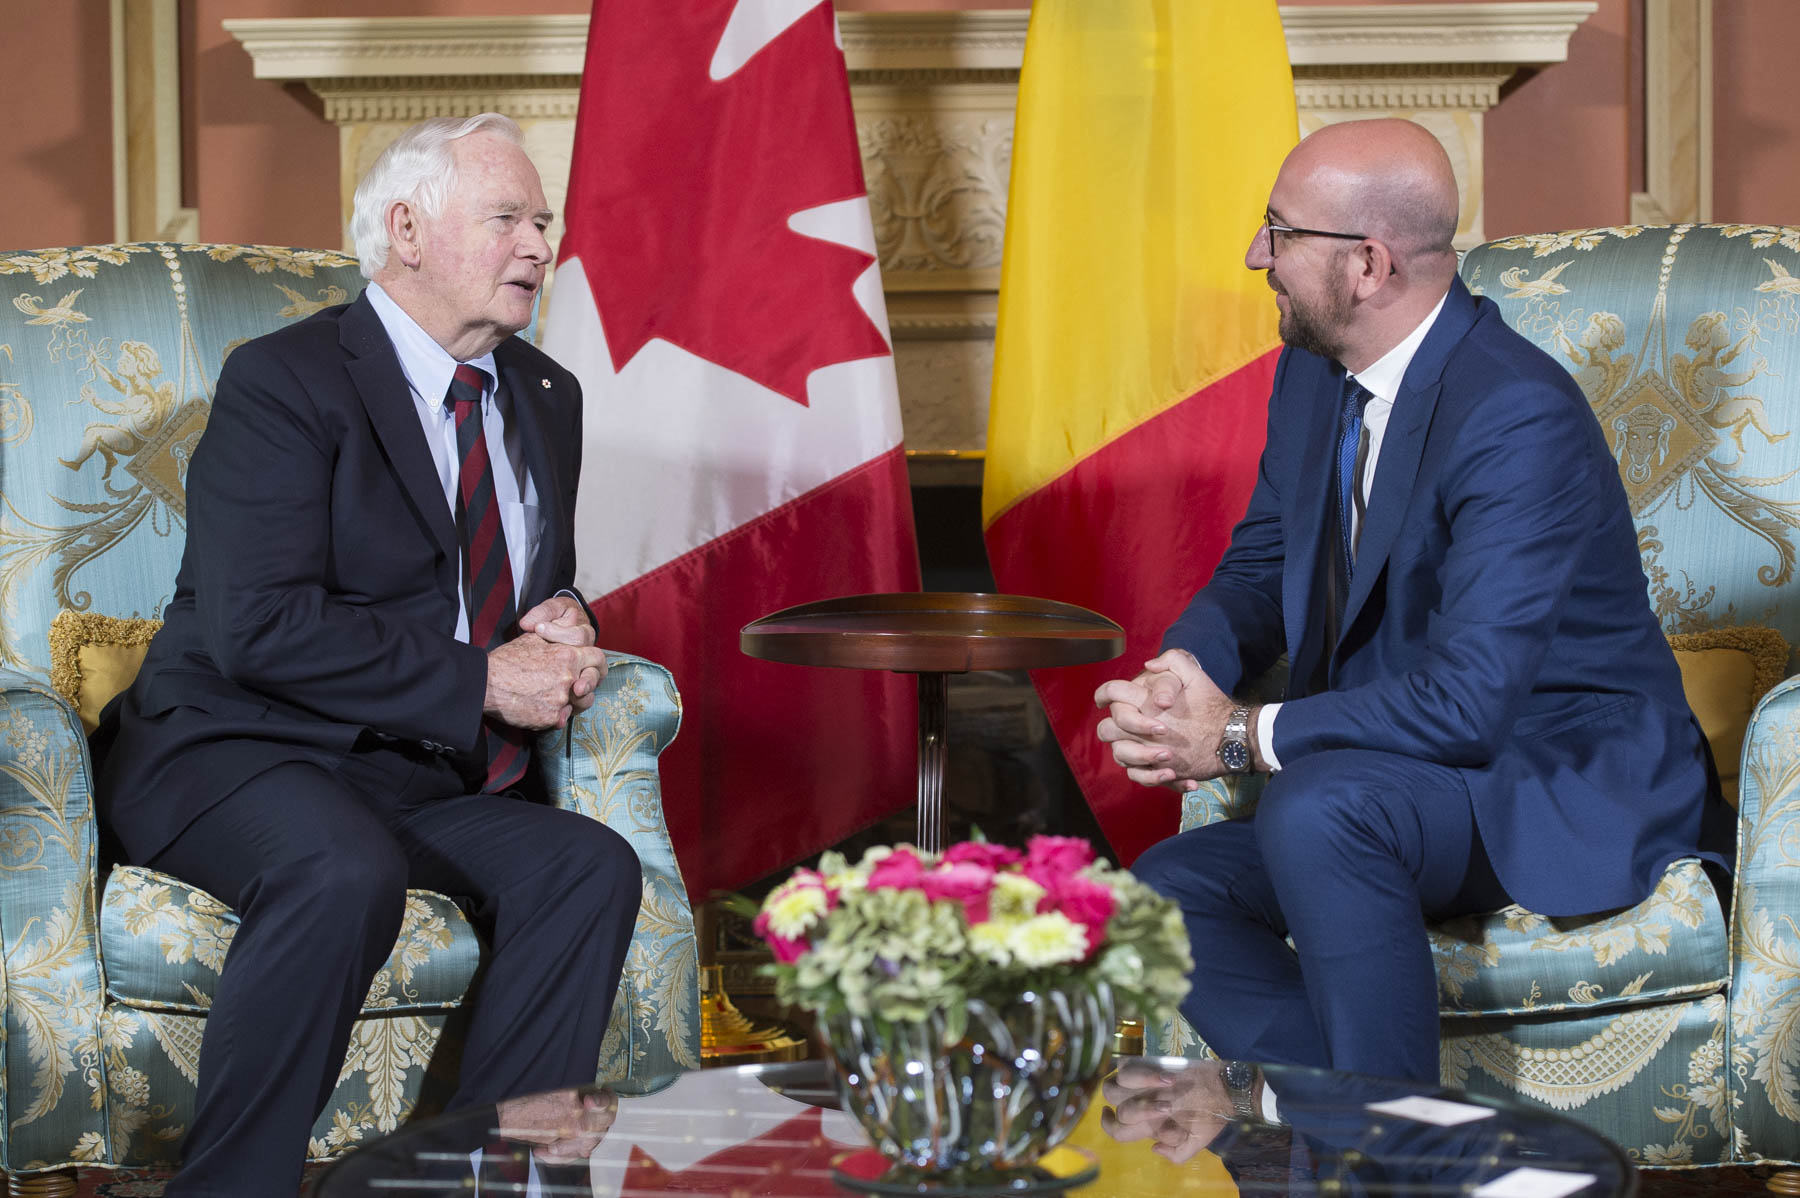 Prime Minister Michel is visiting Canada from June 14 to 17, 2017.